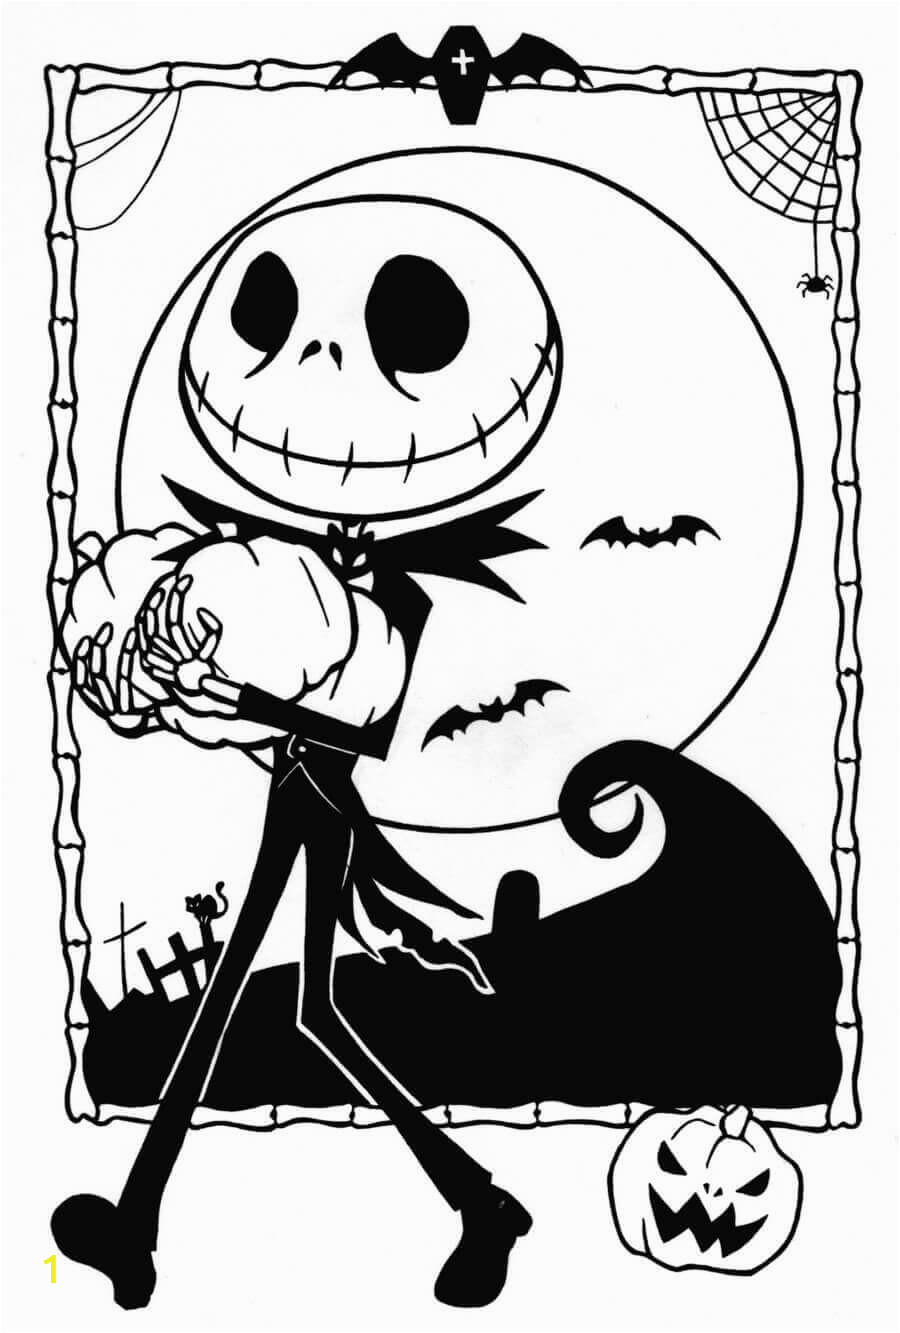 Jack Nightmare before Christmas Coloring Pages 20 Free the Nightmare before Christmas Coloring Pages to Print